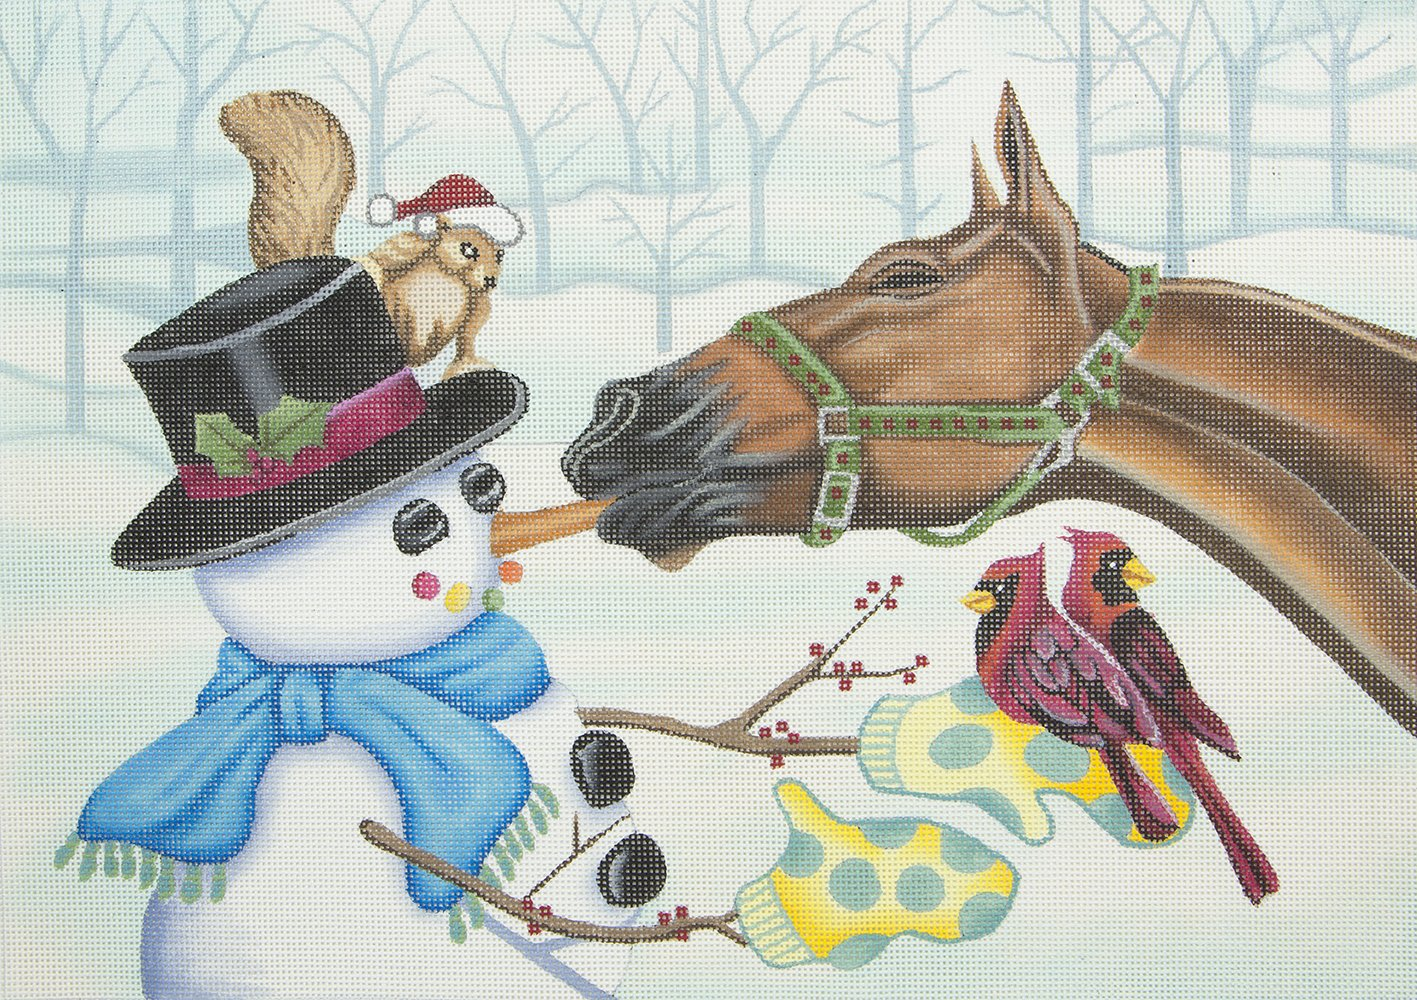 L369 Horse Eating Carrot Nose of Snowman Brenda Stofft